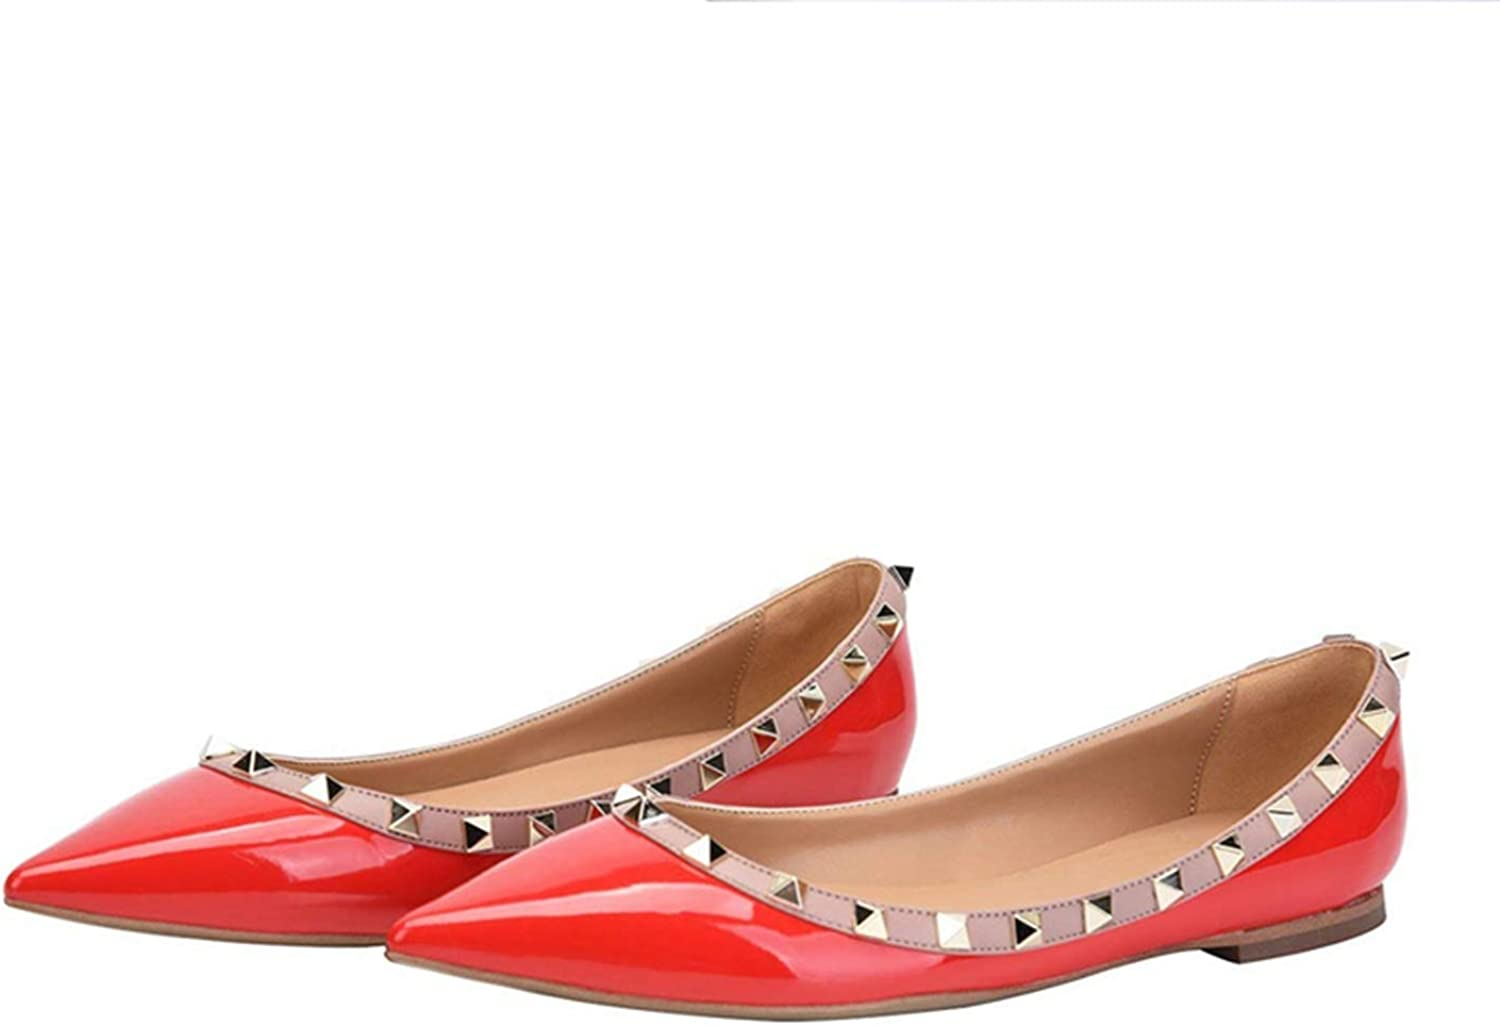 Btimoo Cute Women Shoes Rivets Flats Pointed Toe Ladies Shoes Slip On Flat Heels Casual Shoes Summer Women Shoes US Size 5-15